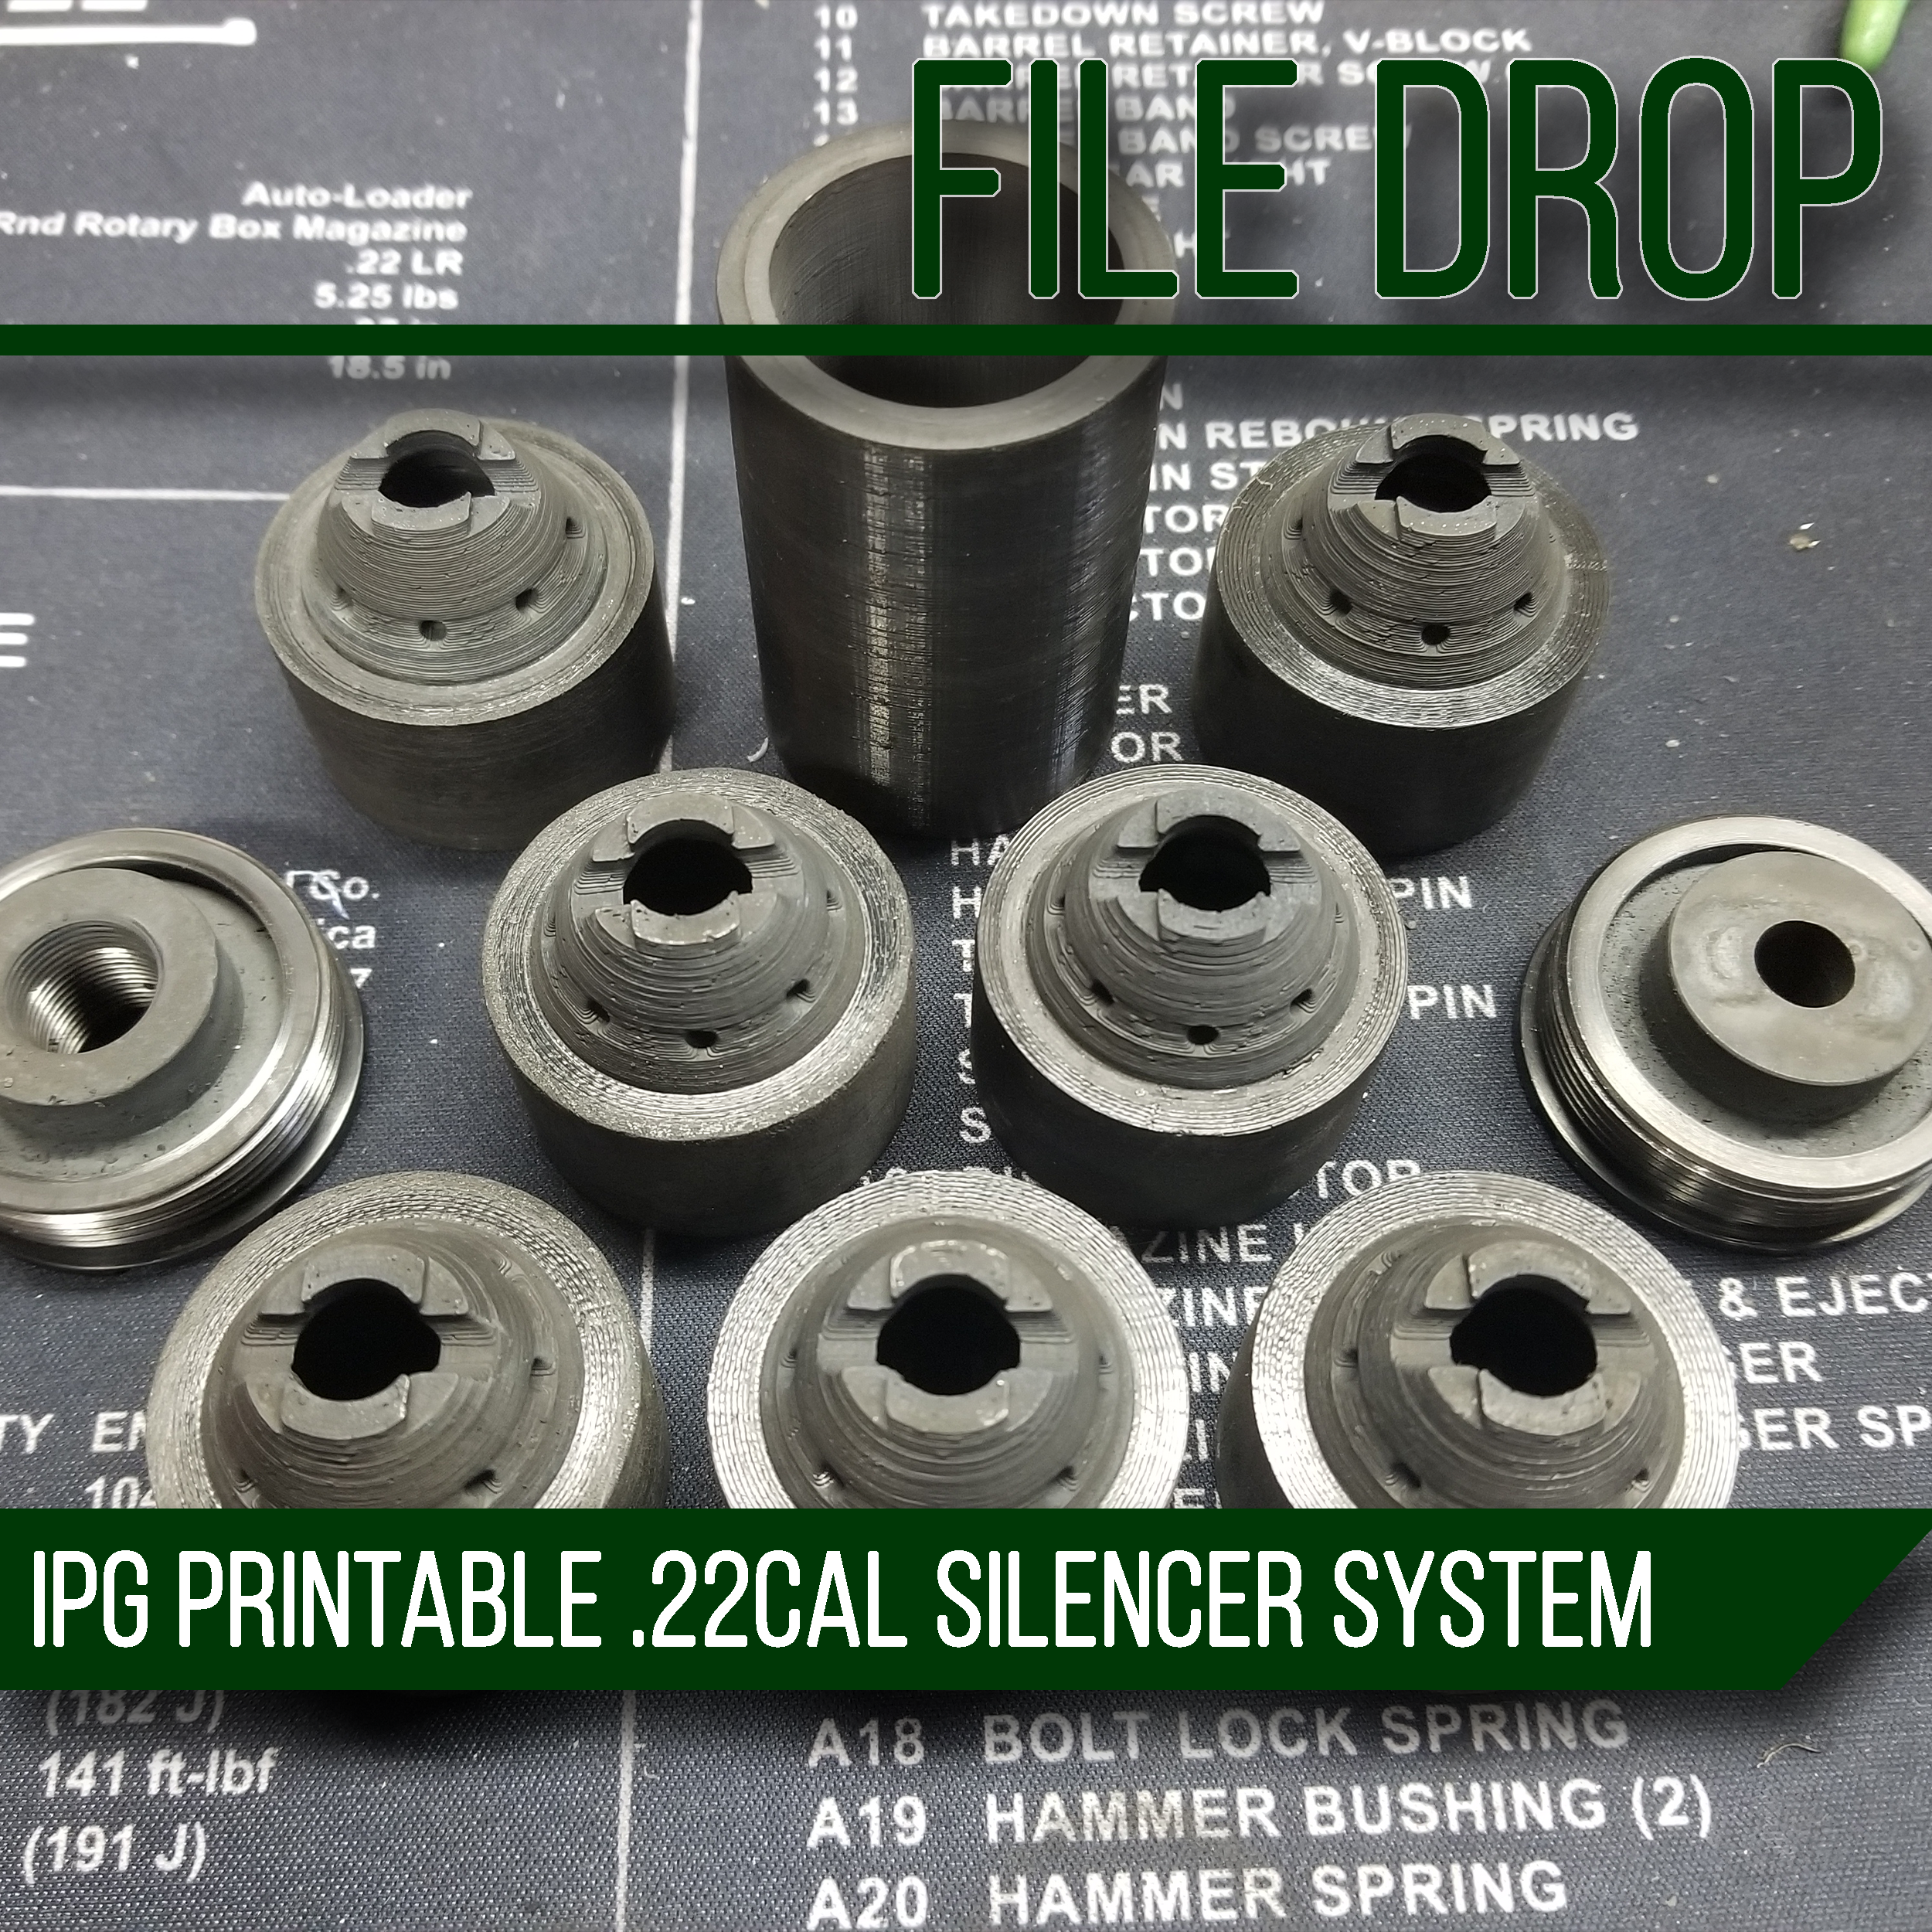 File Drop: The IPG 3D Printable .22Cal Silencer System